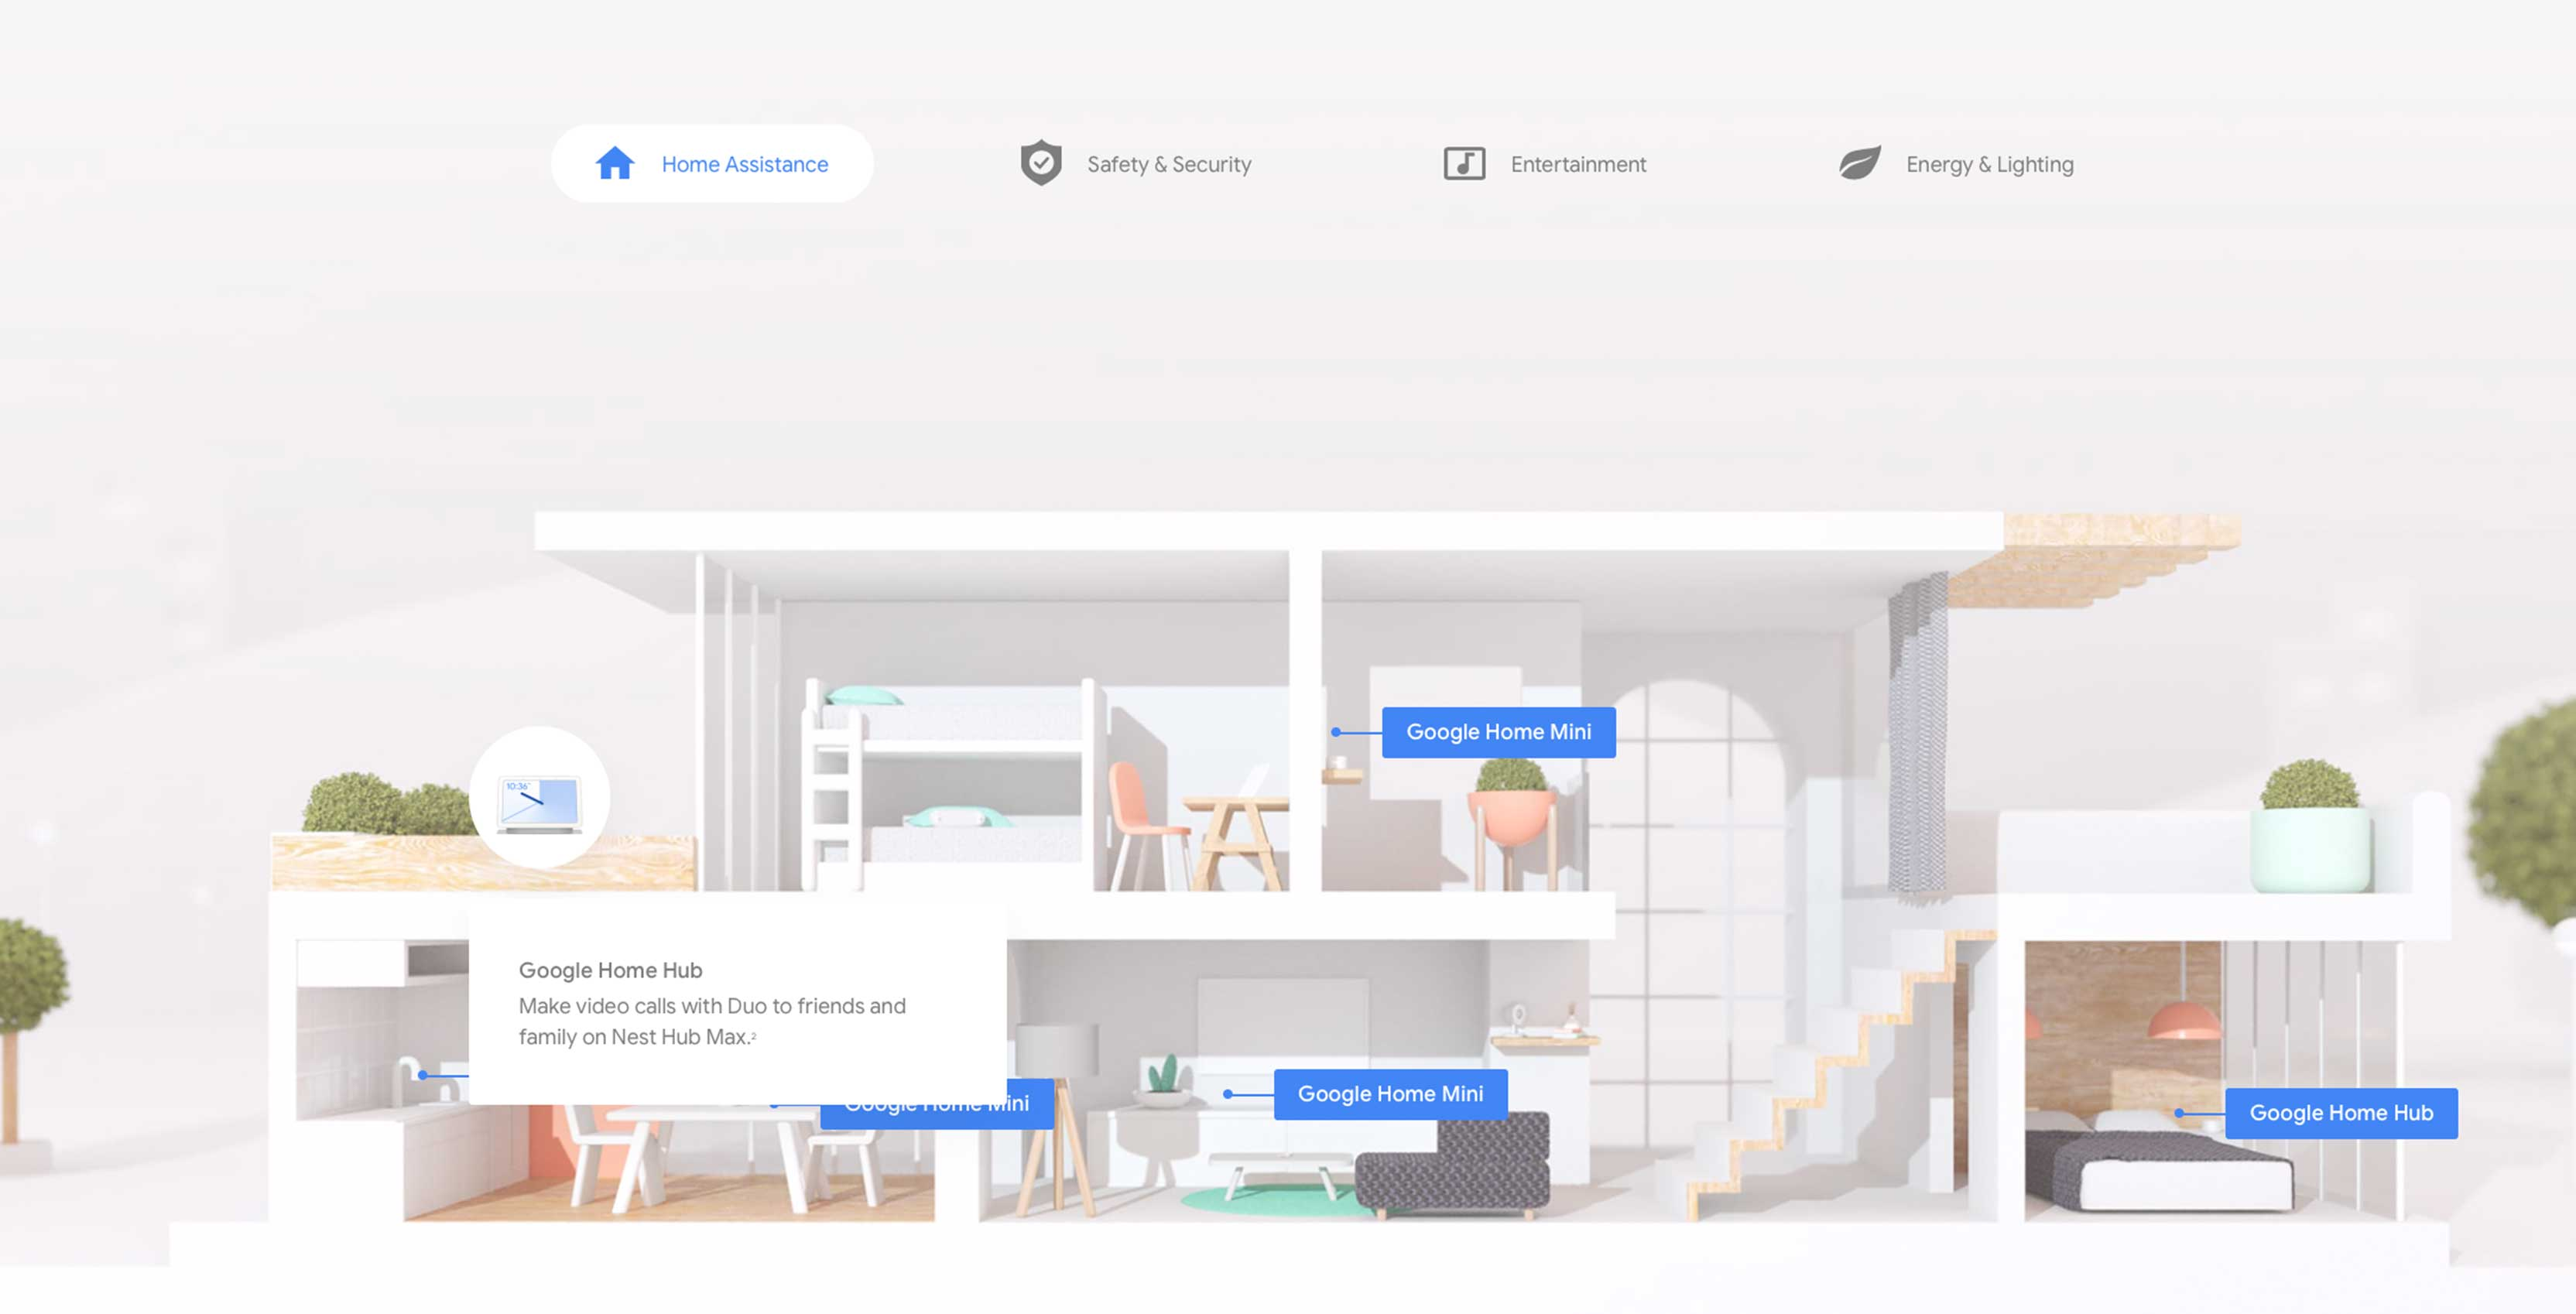 Google will reportedly rebrand the Home Hub to 'Nest Hub' - MobileSyrup 2